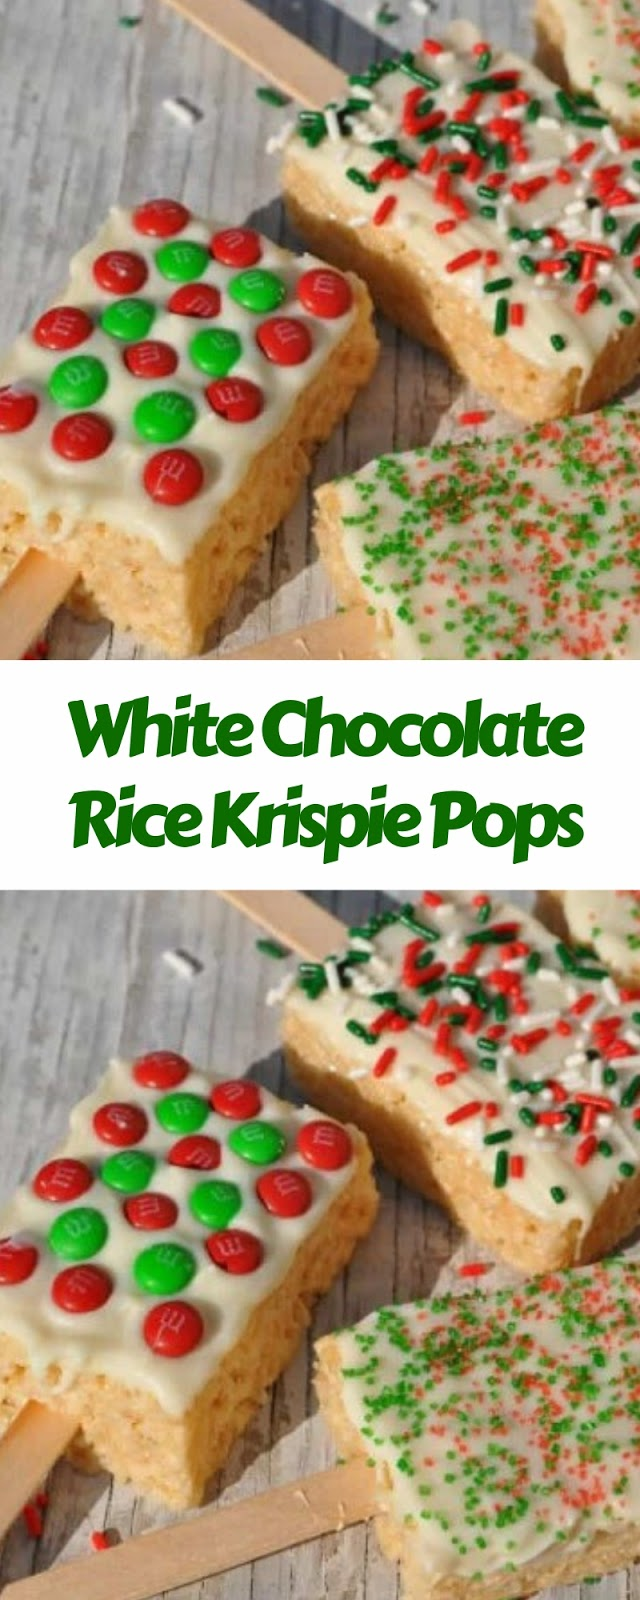 White Chocolate Rice Krispie Pops